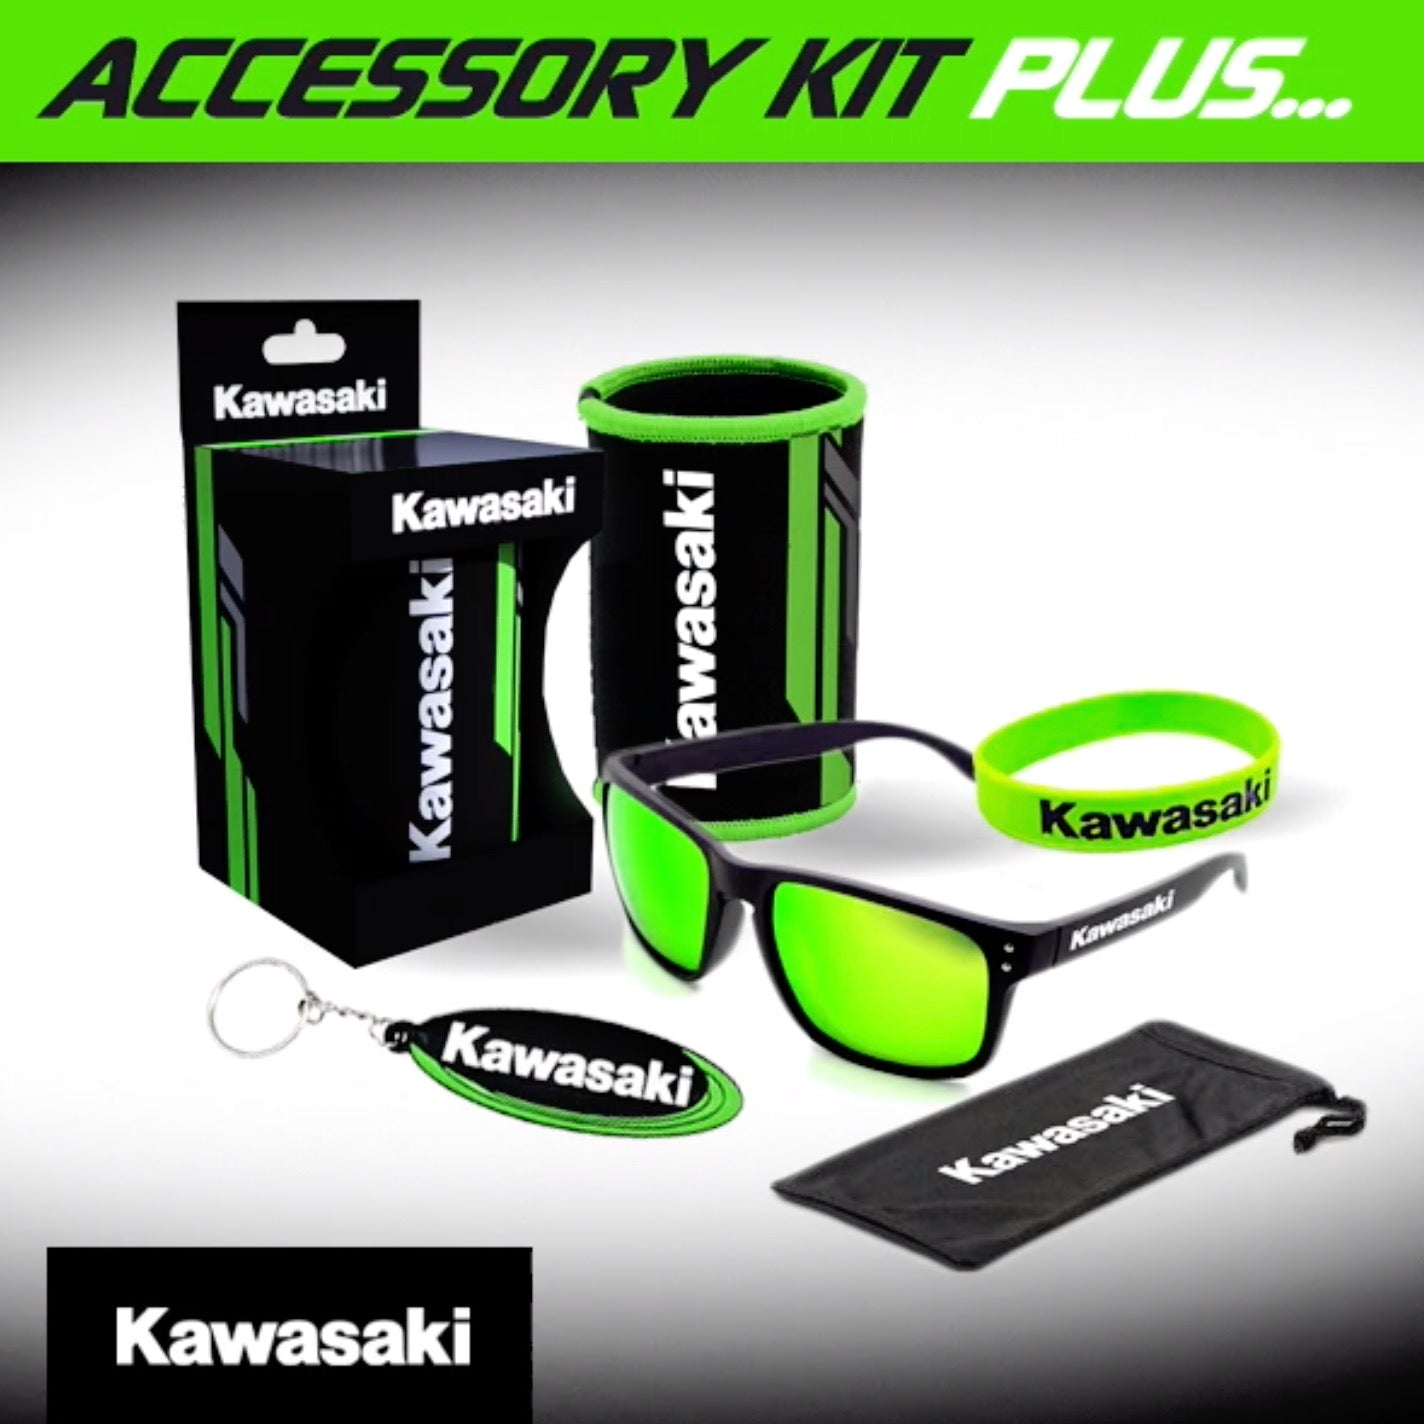 Kawasaki Bundle Deal